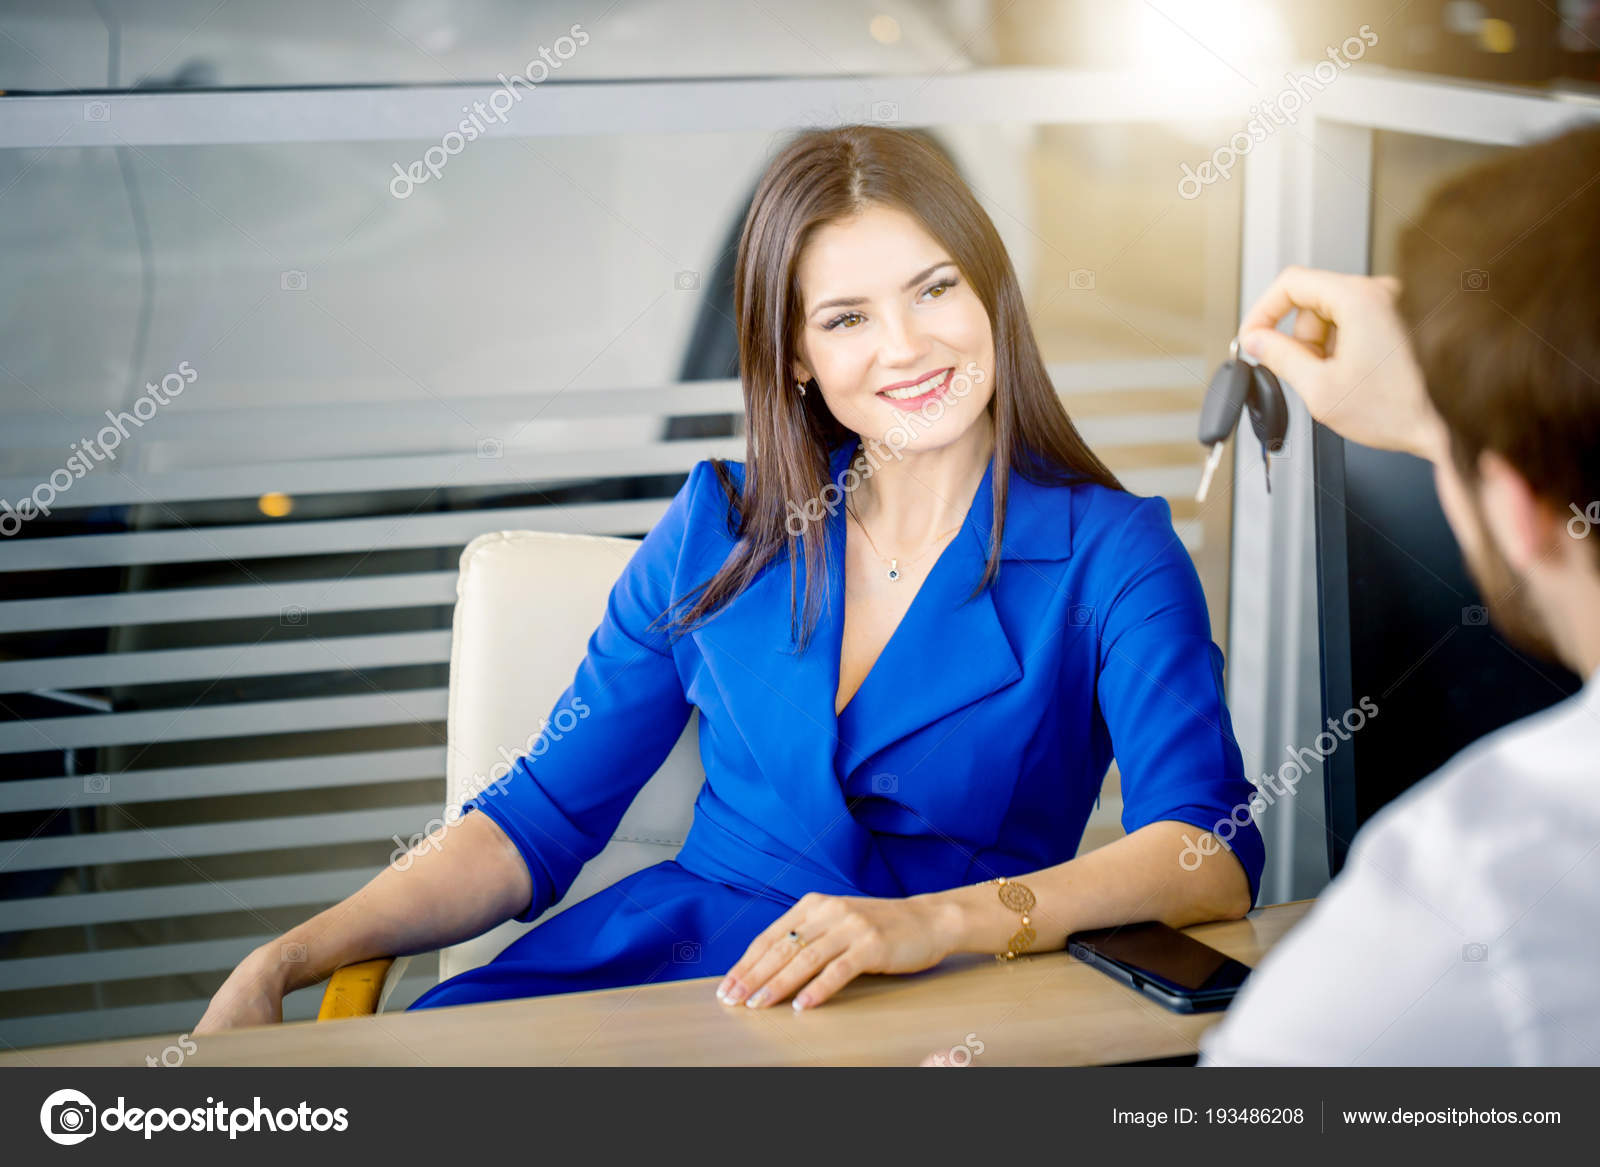 Attractive European Woman Receiving Car Keys From Car Sales Agent Stock Photo C Ufabizphoto 193486208